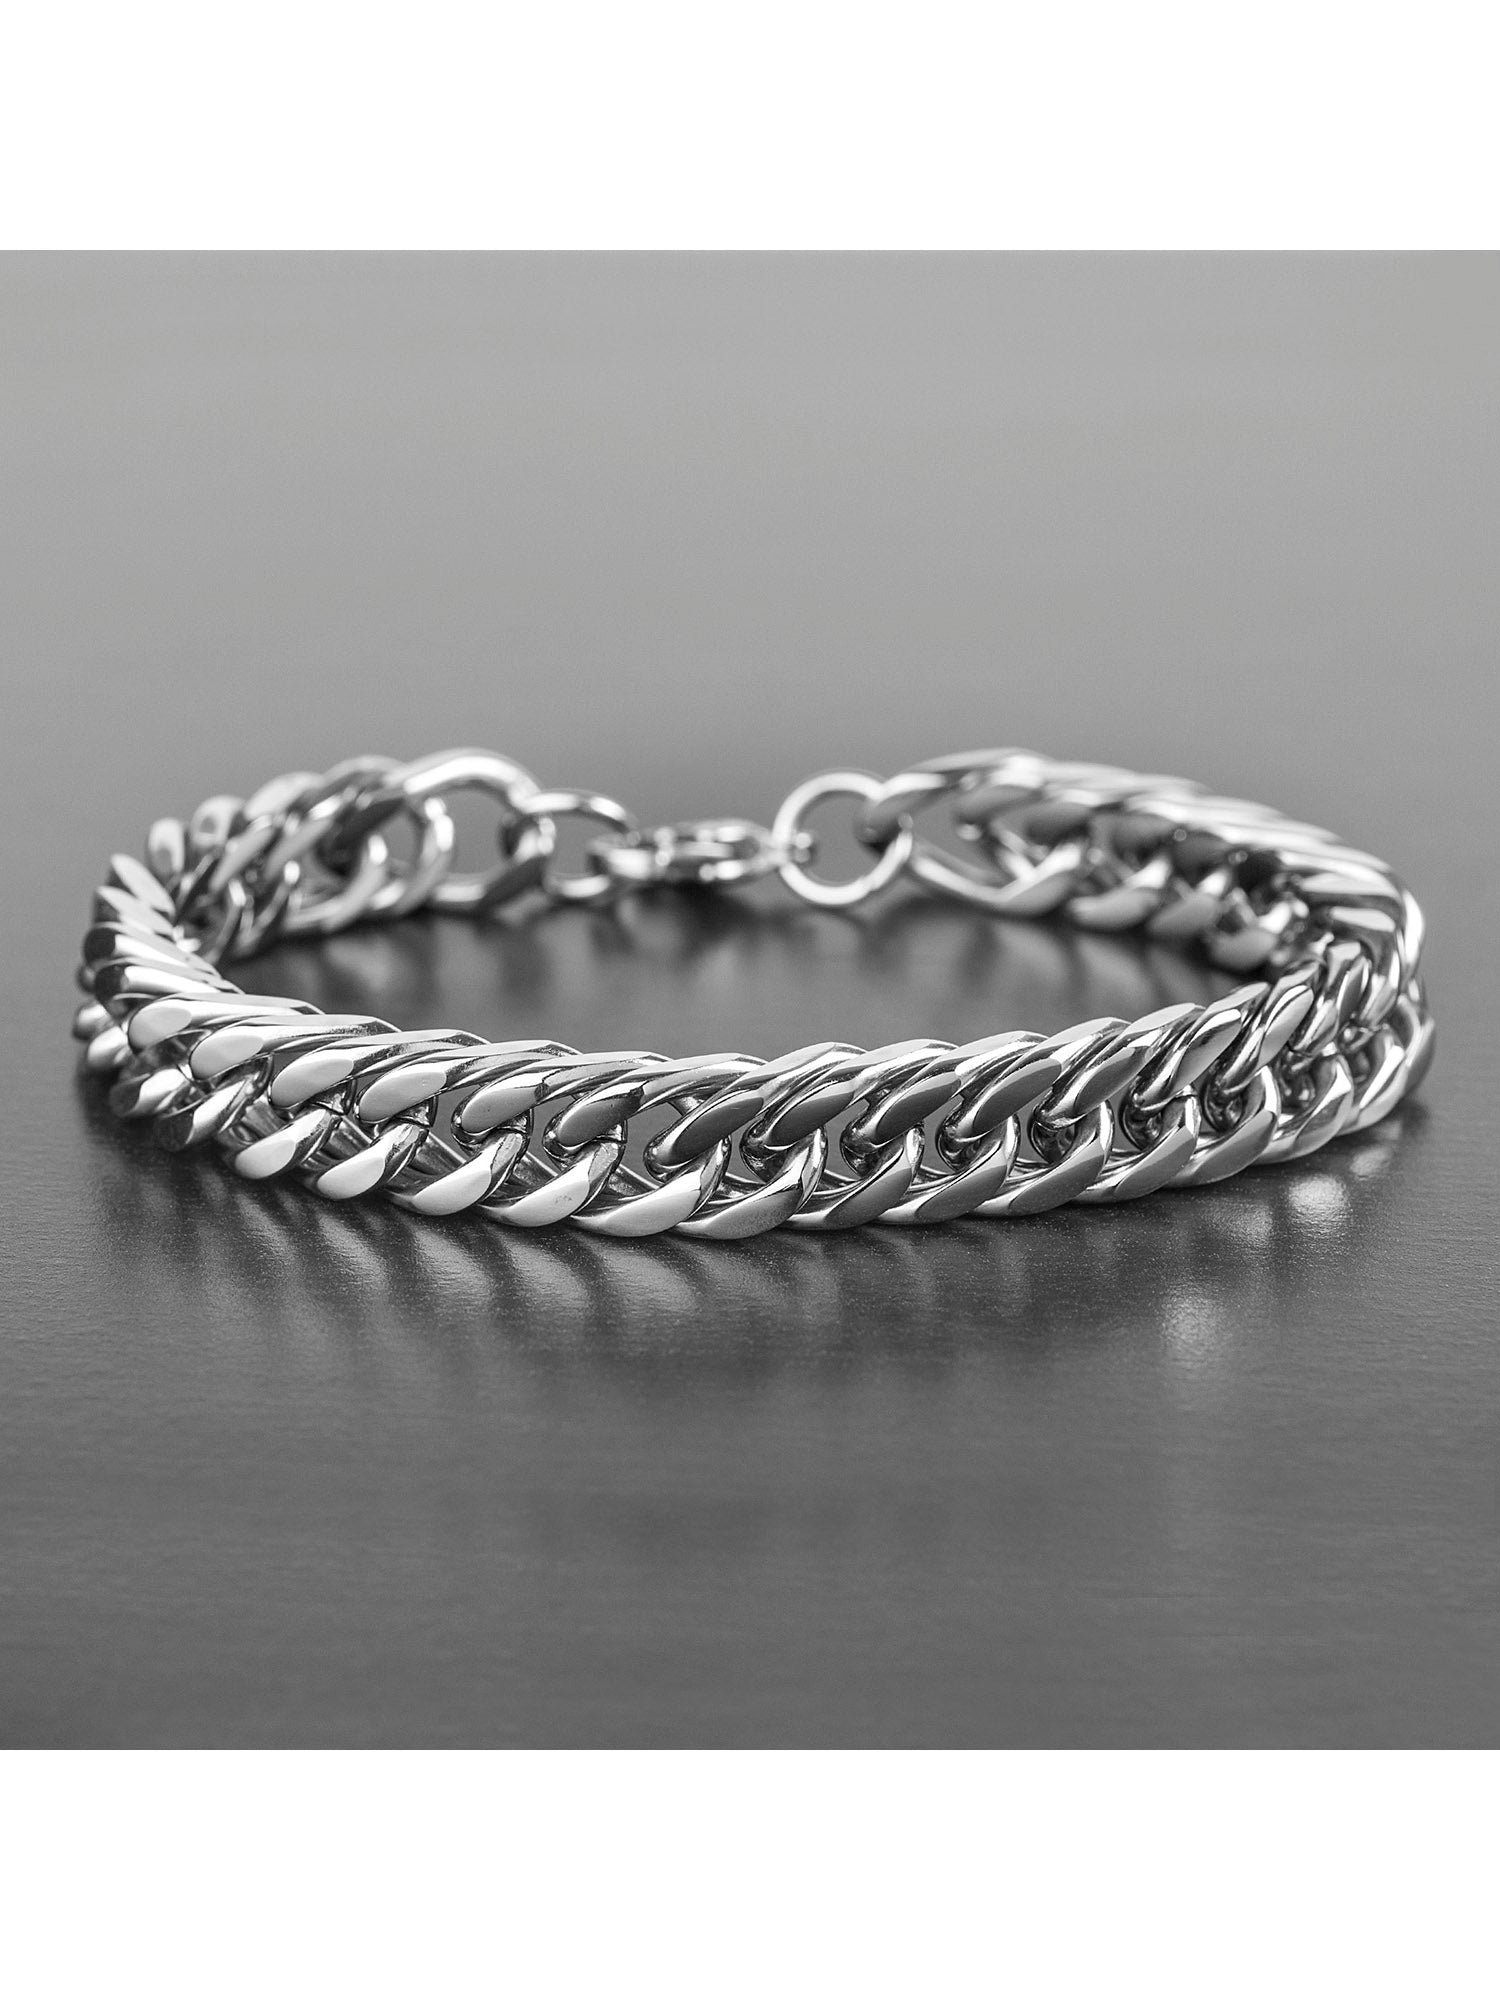 Stainless Steel Polished Curb Chain Link Bracelet (10mm) - 8""